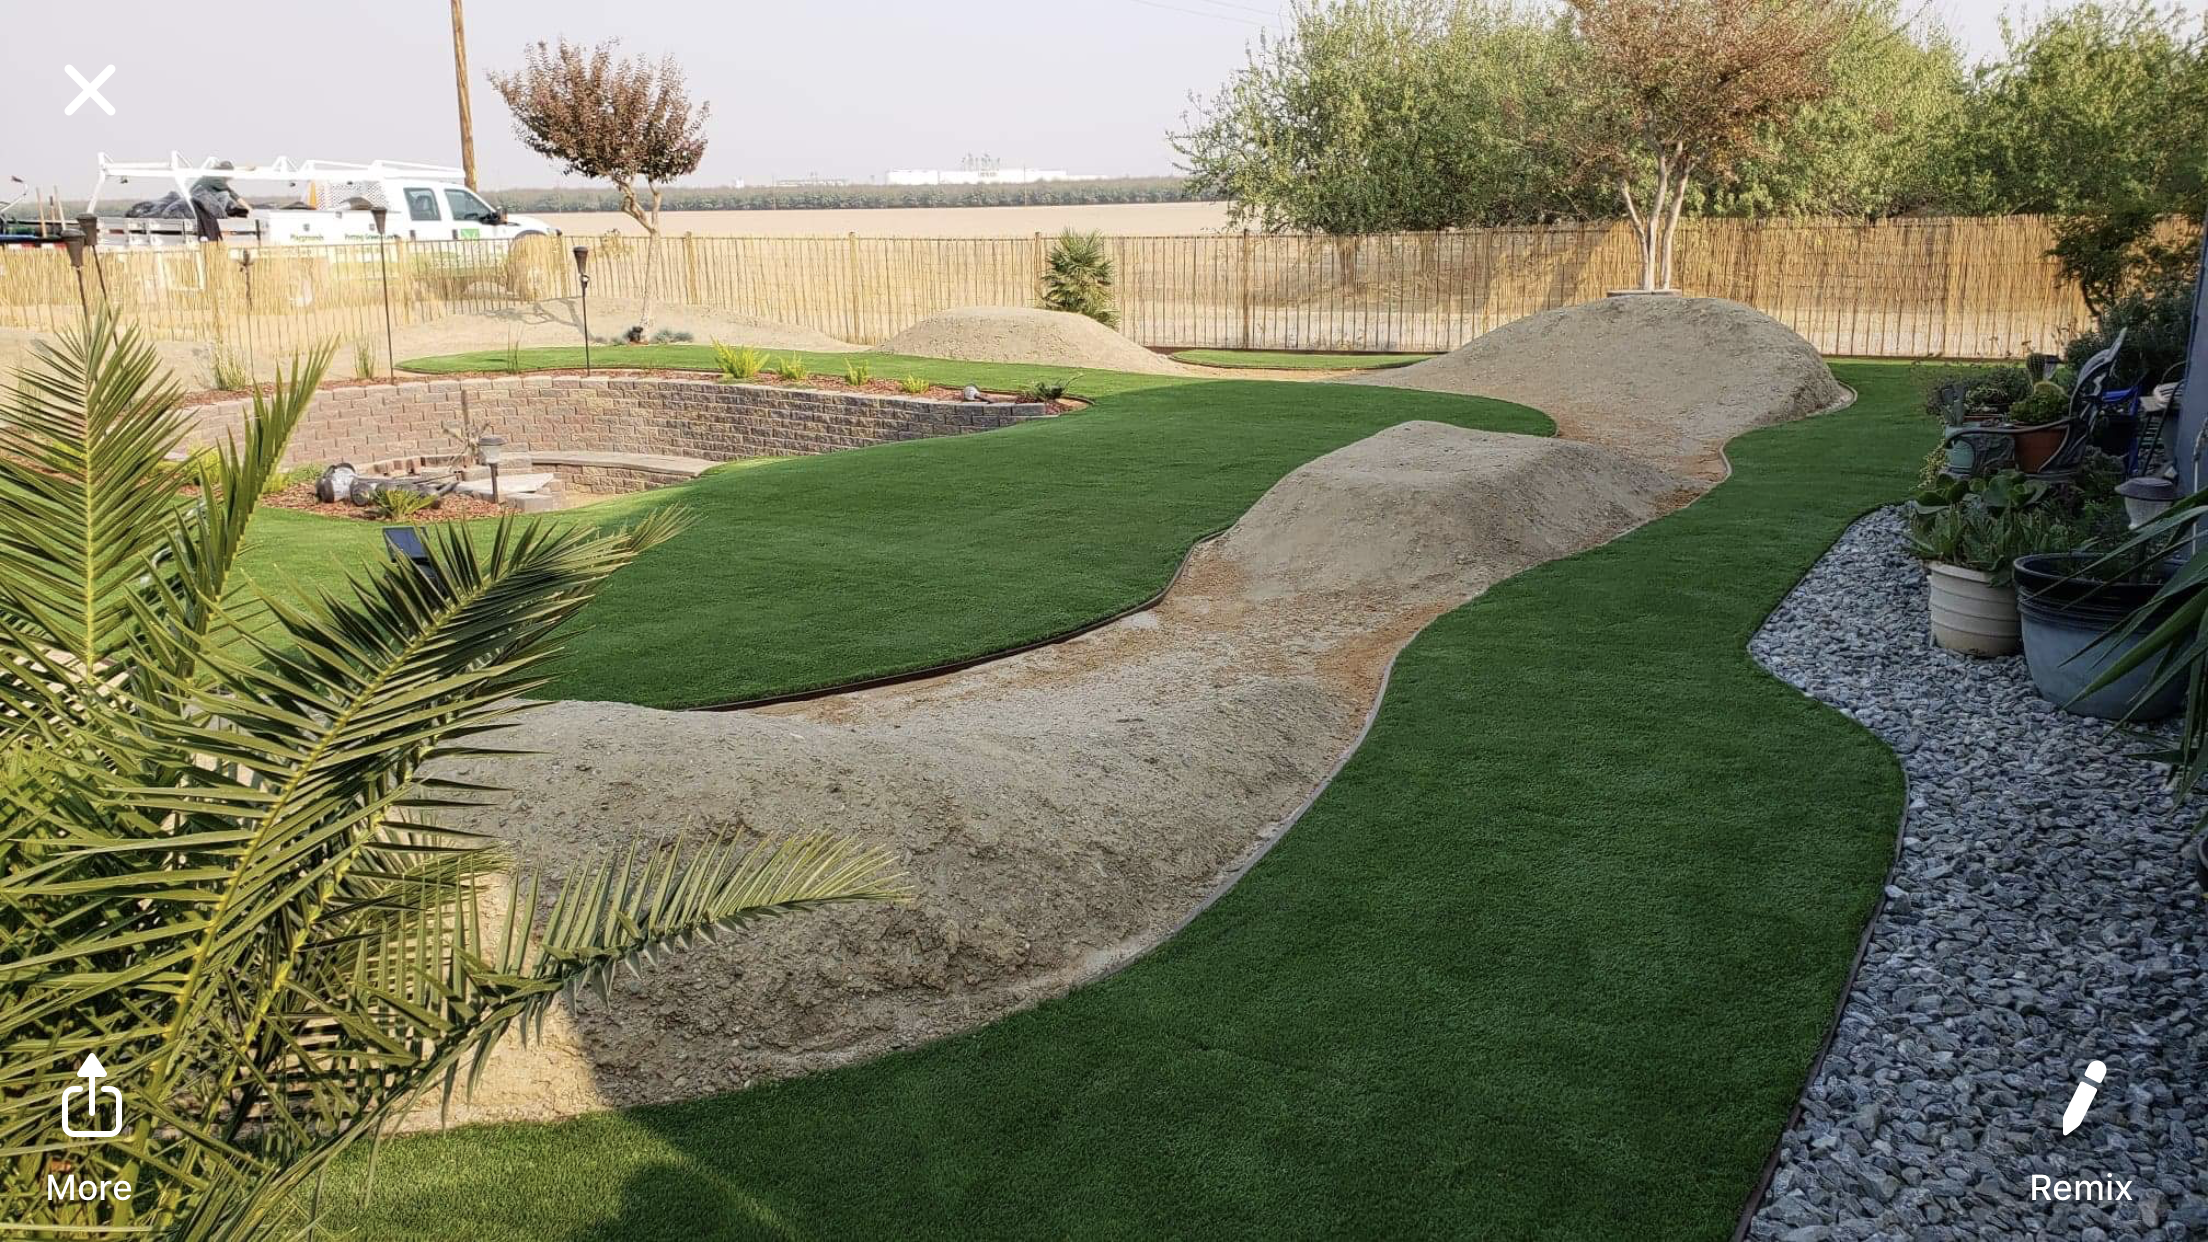 Double S-72 most realistic artificial grass